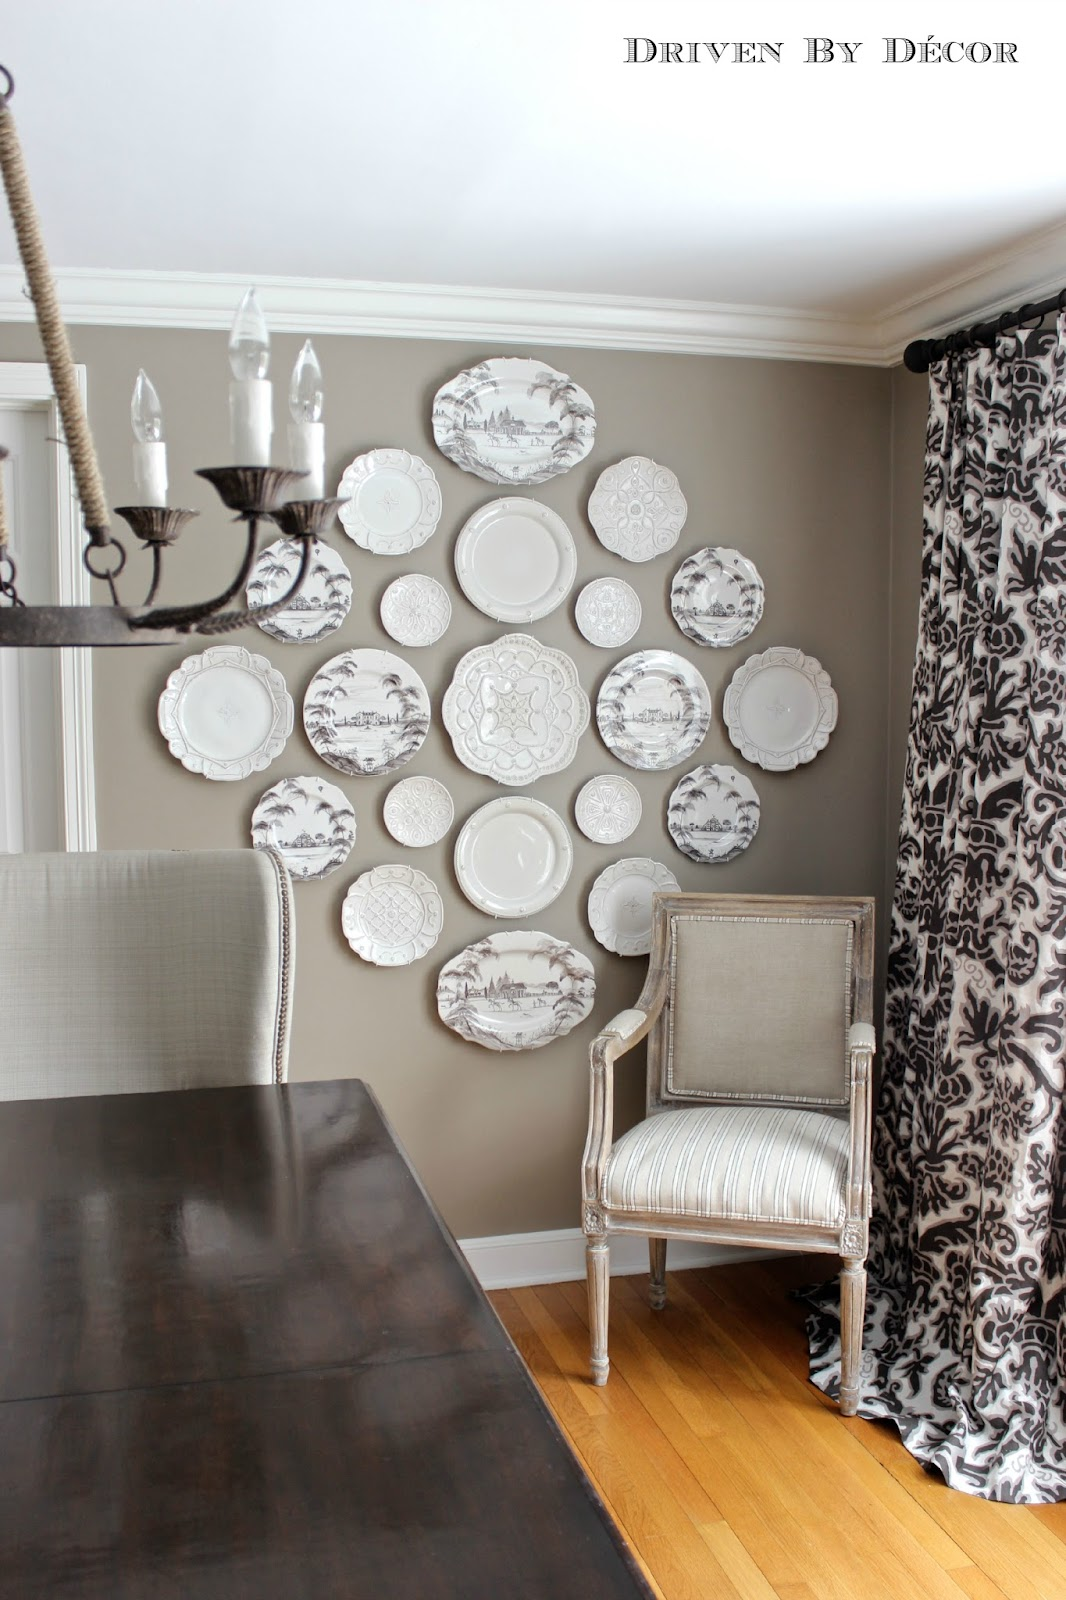 Hanging Pictures the easy how-to for hanging plates on the wall! | drivendecor